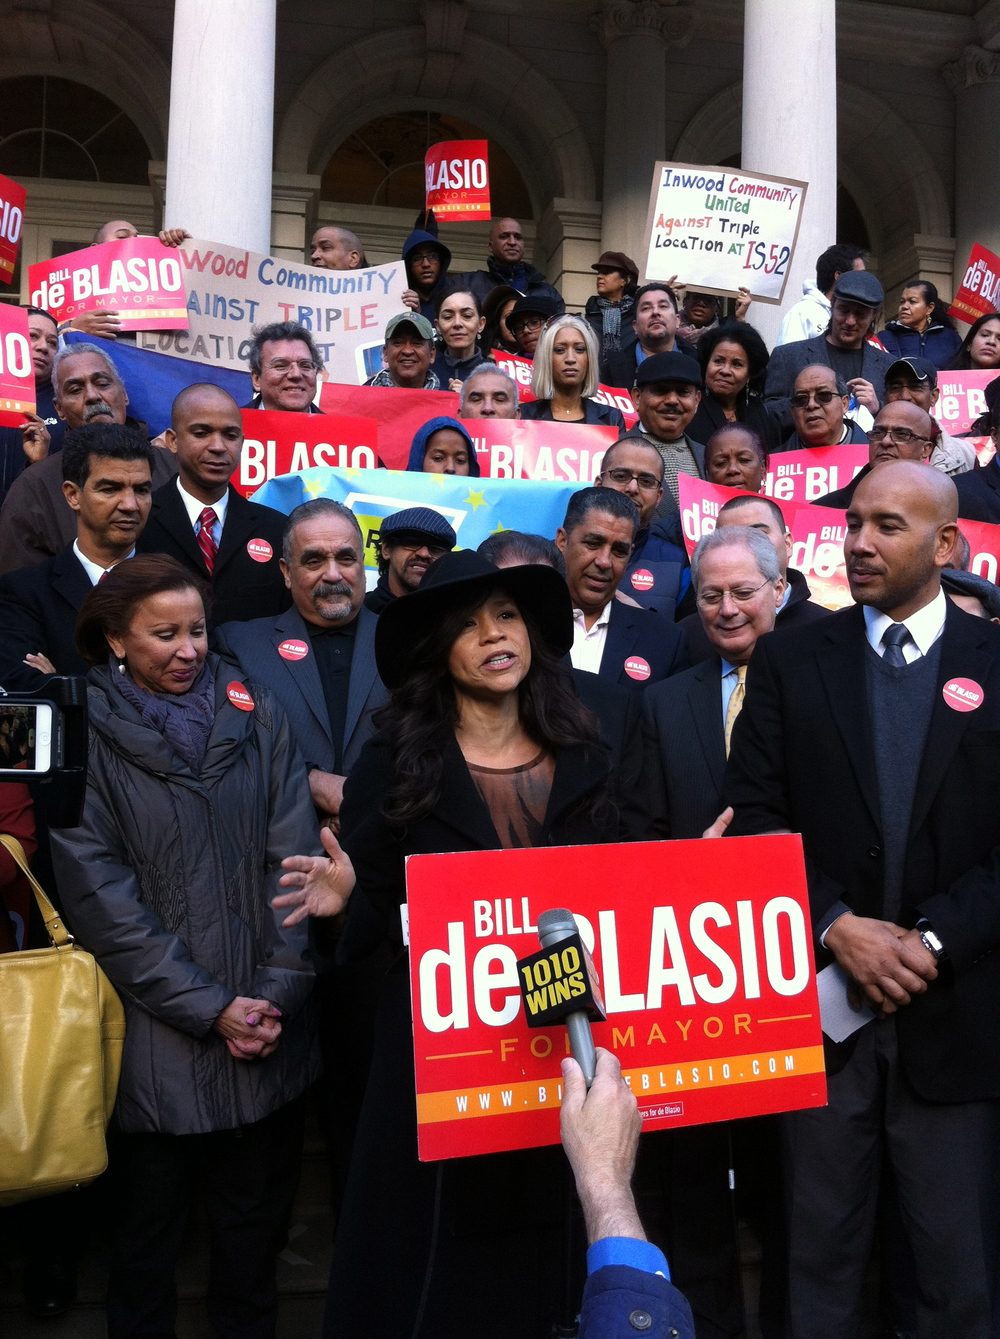 Rosie Perez at Bill De Blasio Rally, City Hall